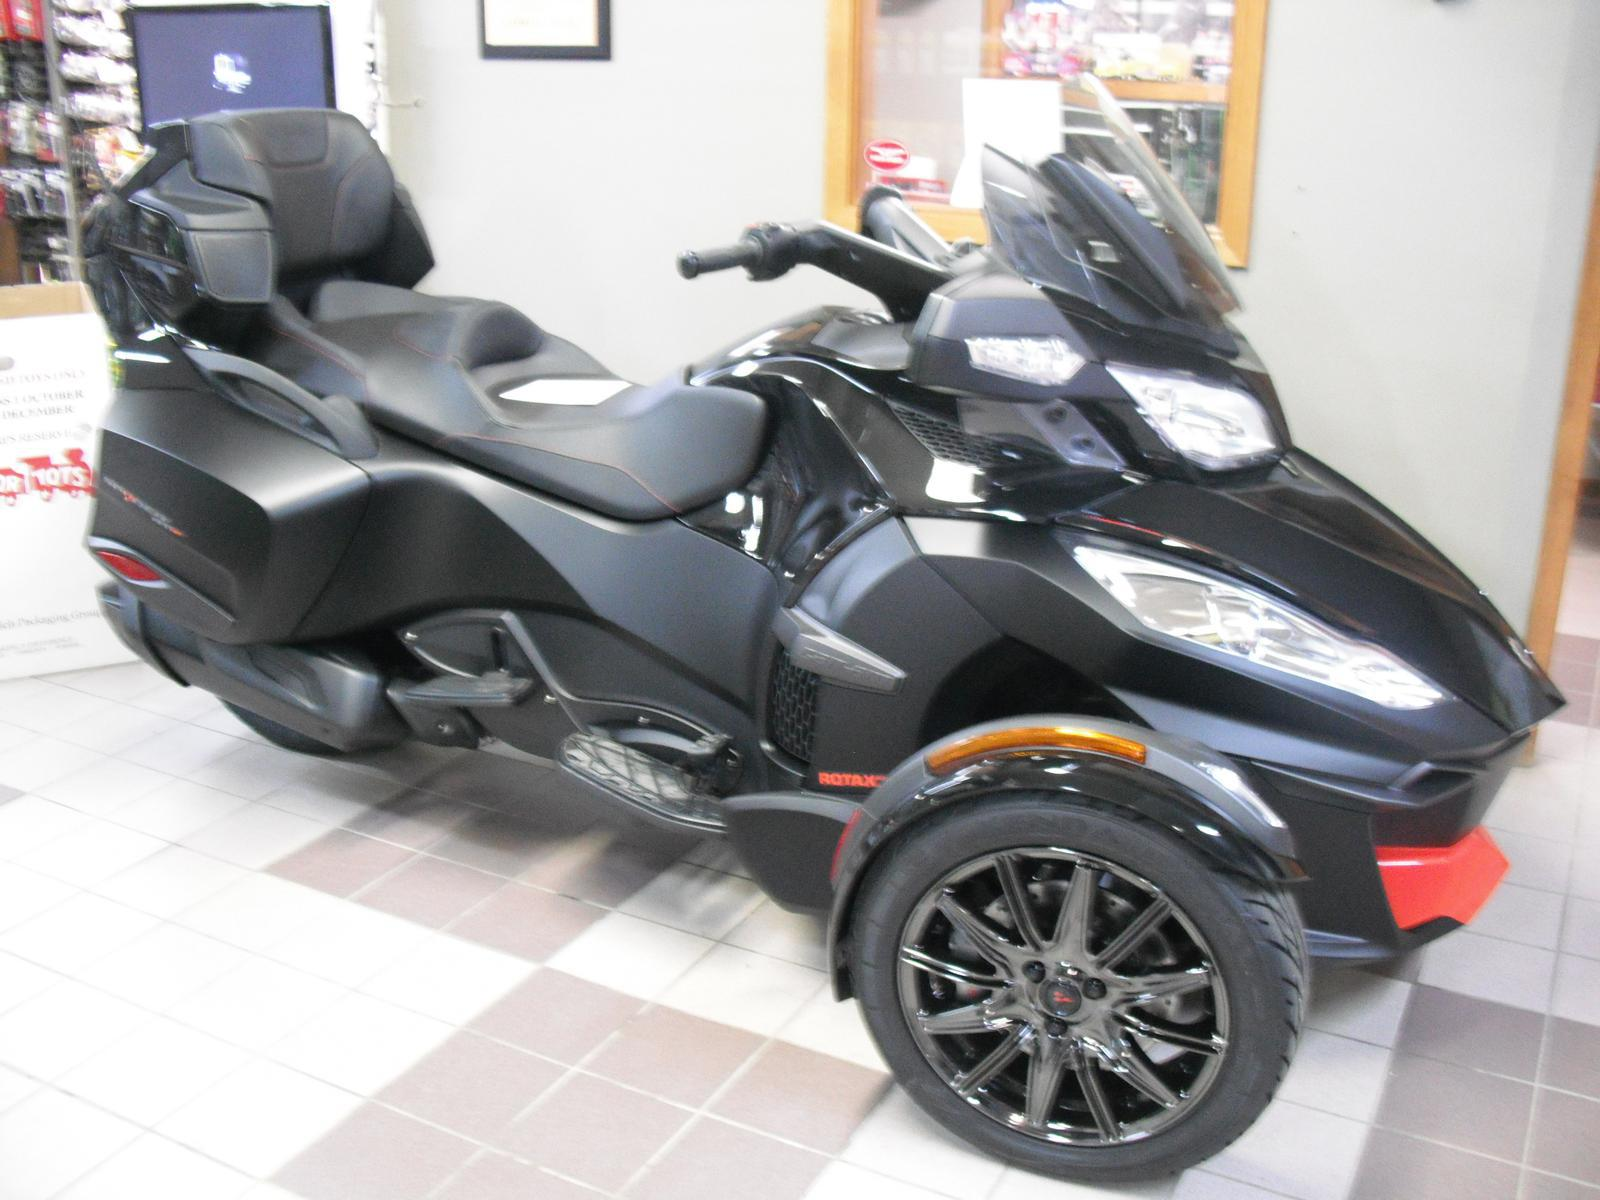 2016 can am spyder rt s special series for sale in mora mn caswell cycle 320 679 1383